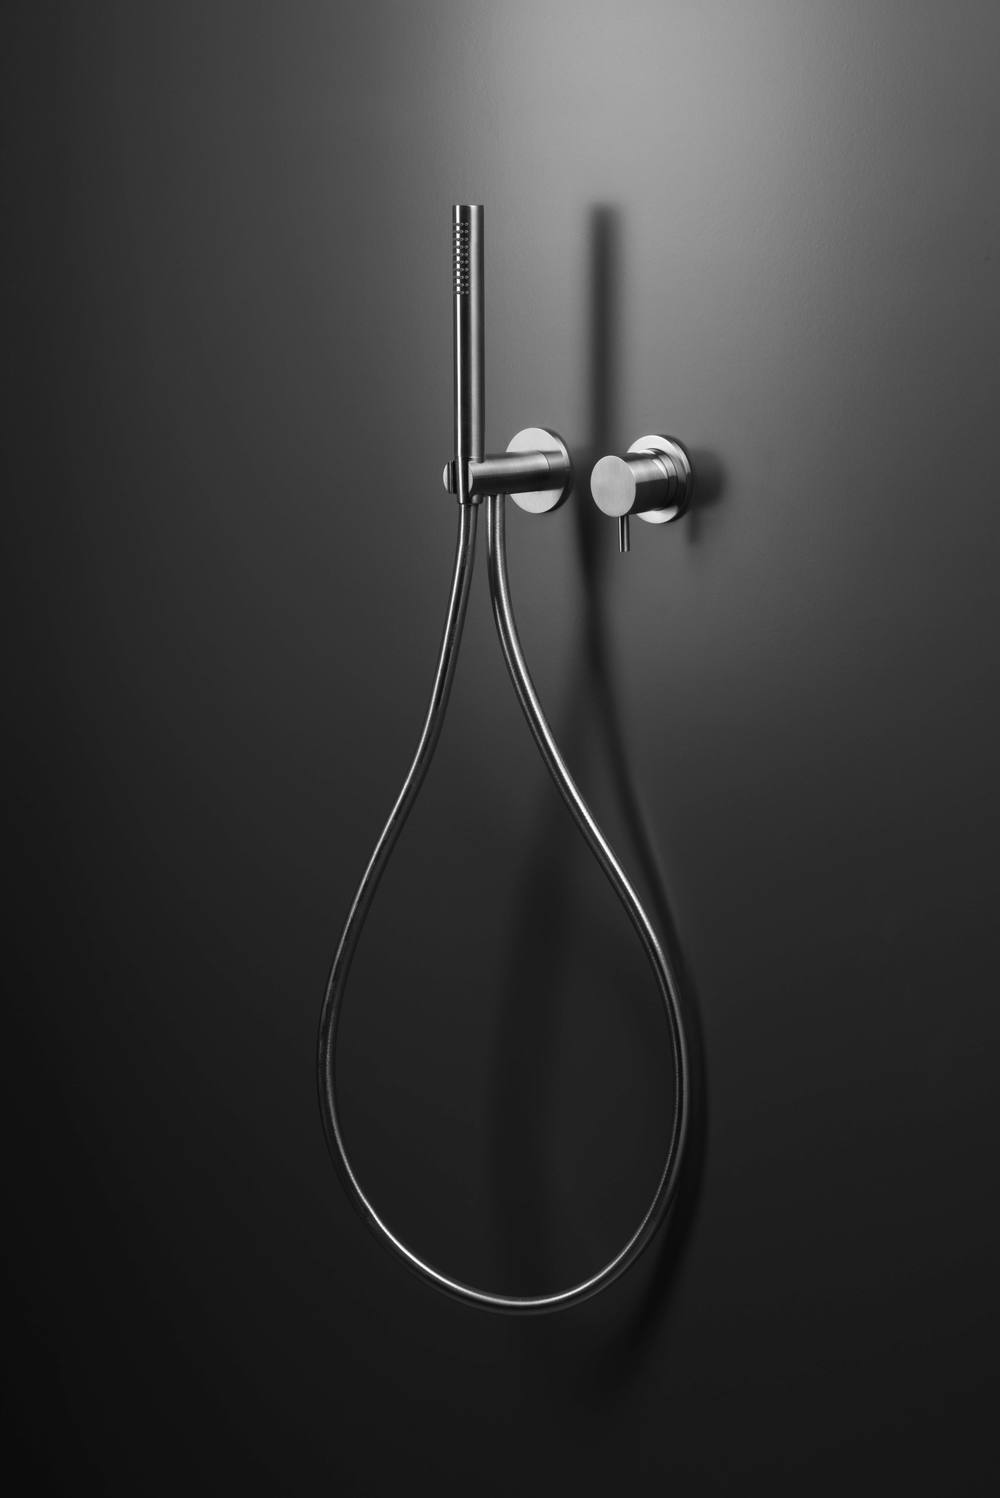 INOX Shower Station, Courtesy Blu Bathworks